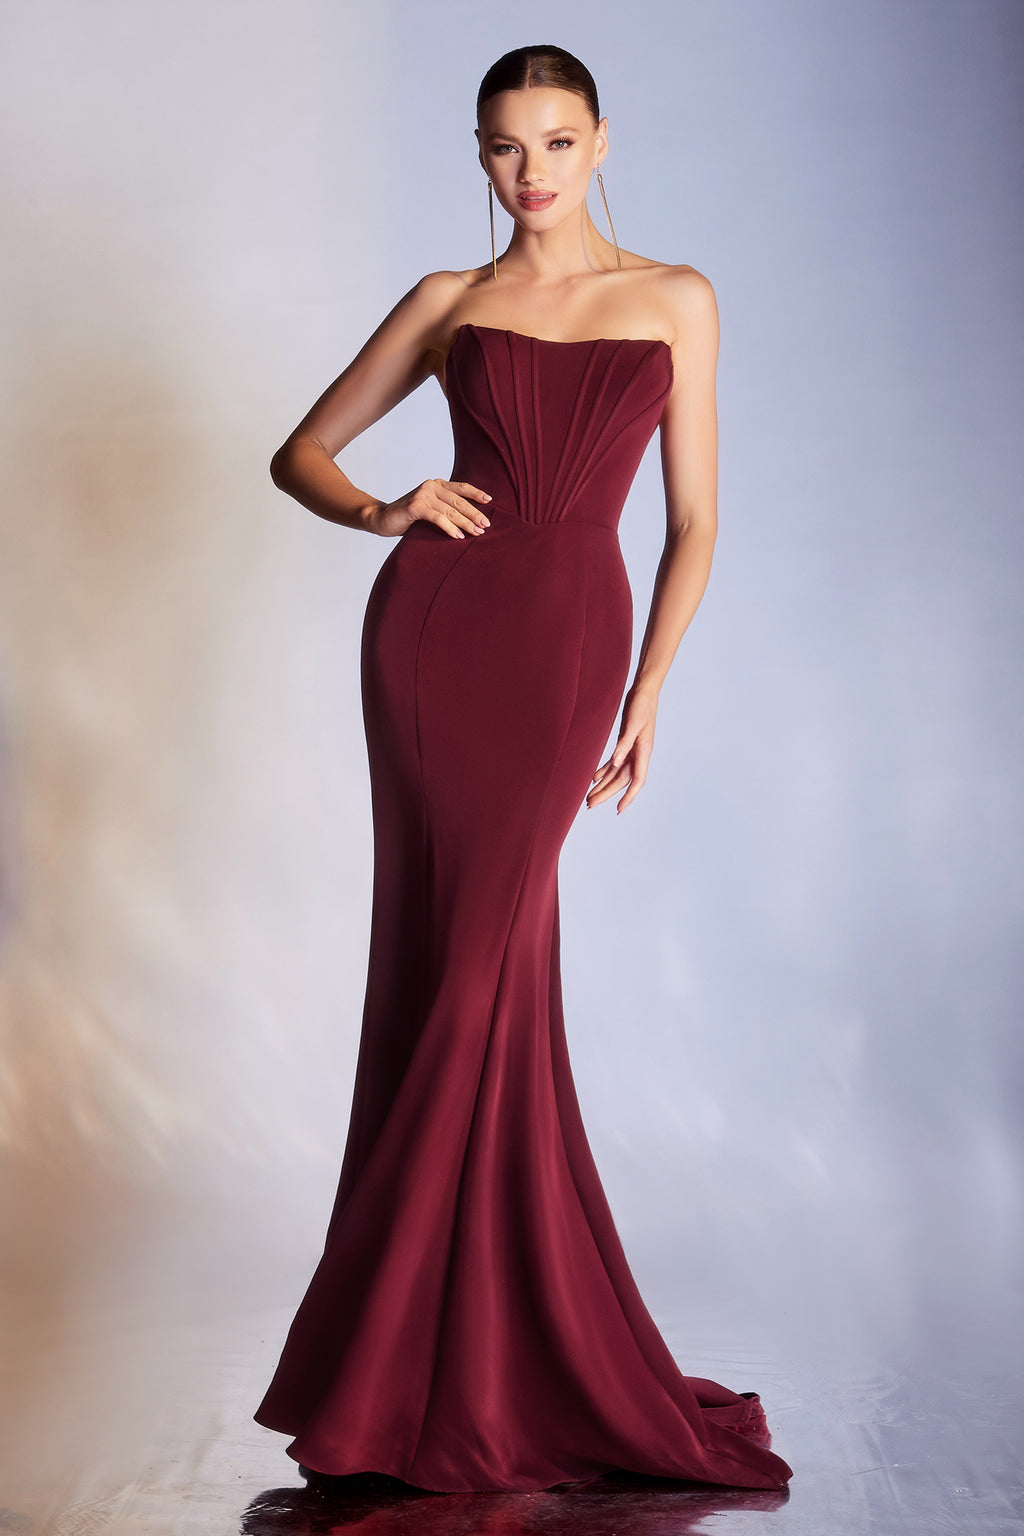 Elegant Mermaid Style Off Shoulder Gown with Fitted Bodice #CDCD223